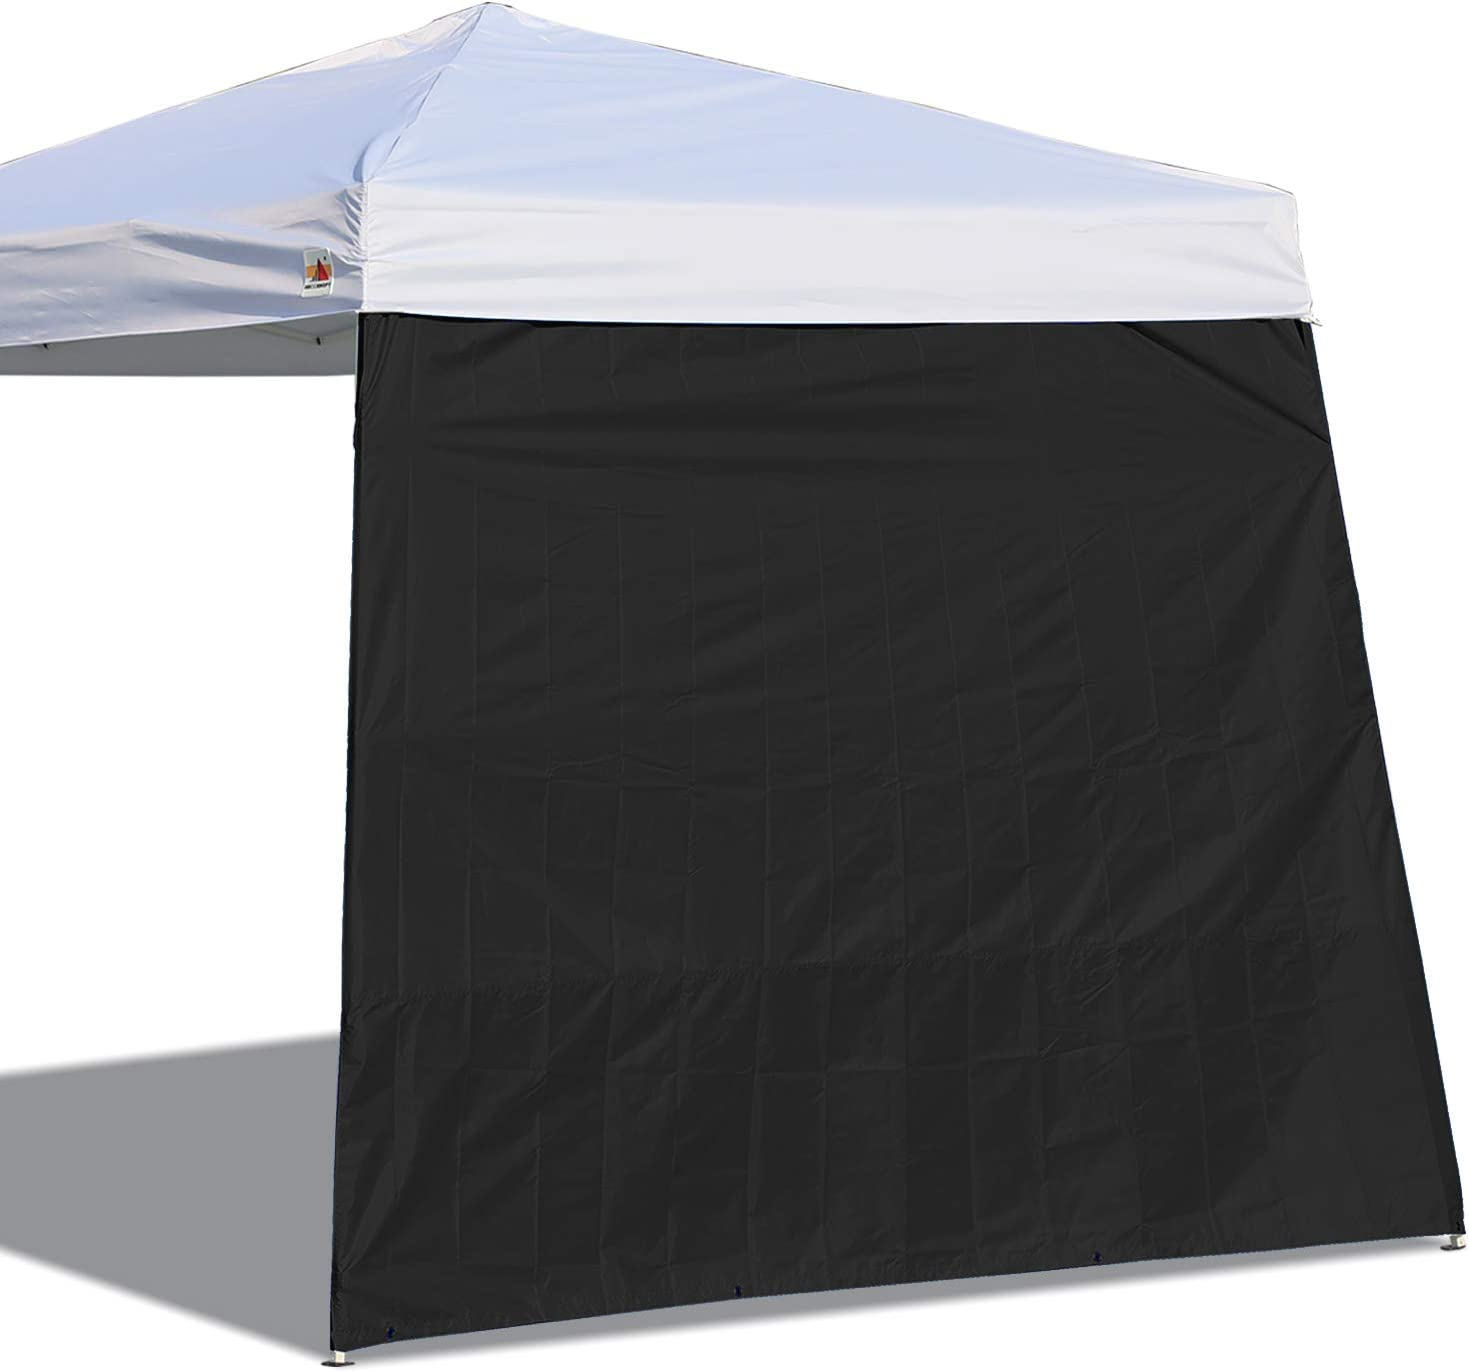 ABCCANOPY Canopy Side Wall for 10'x 10' Slant Leg Canopy Tent, 1 Pack Sidewall Only, Black